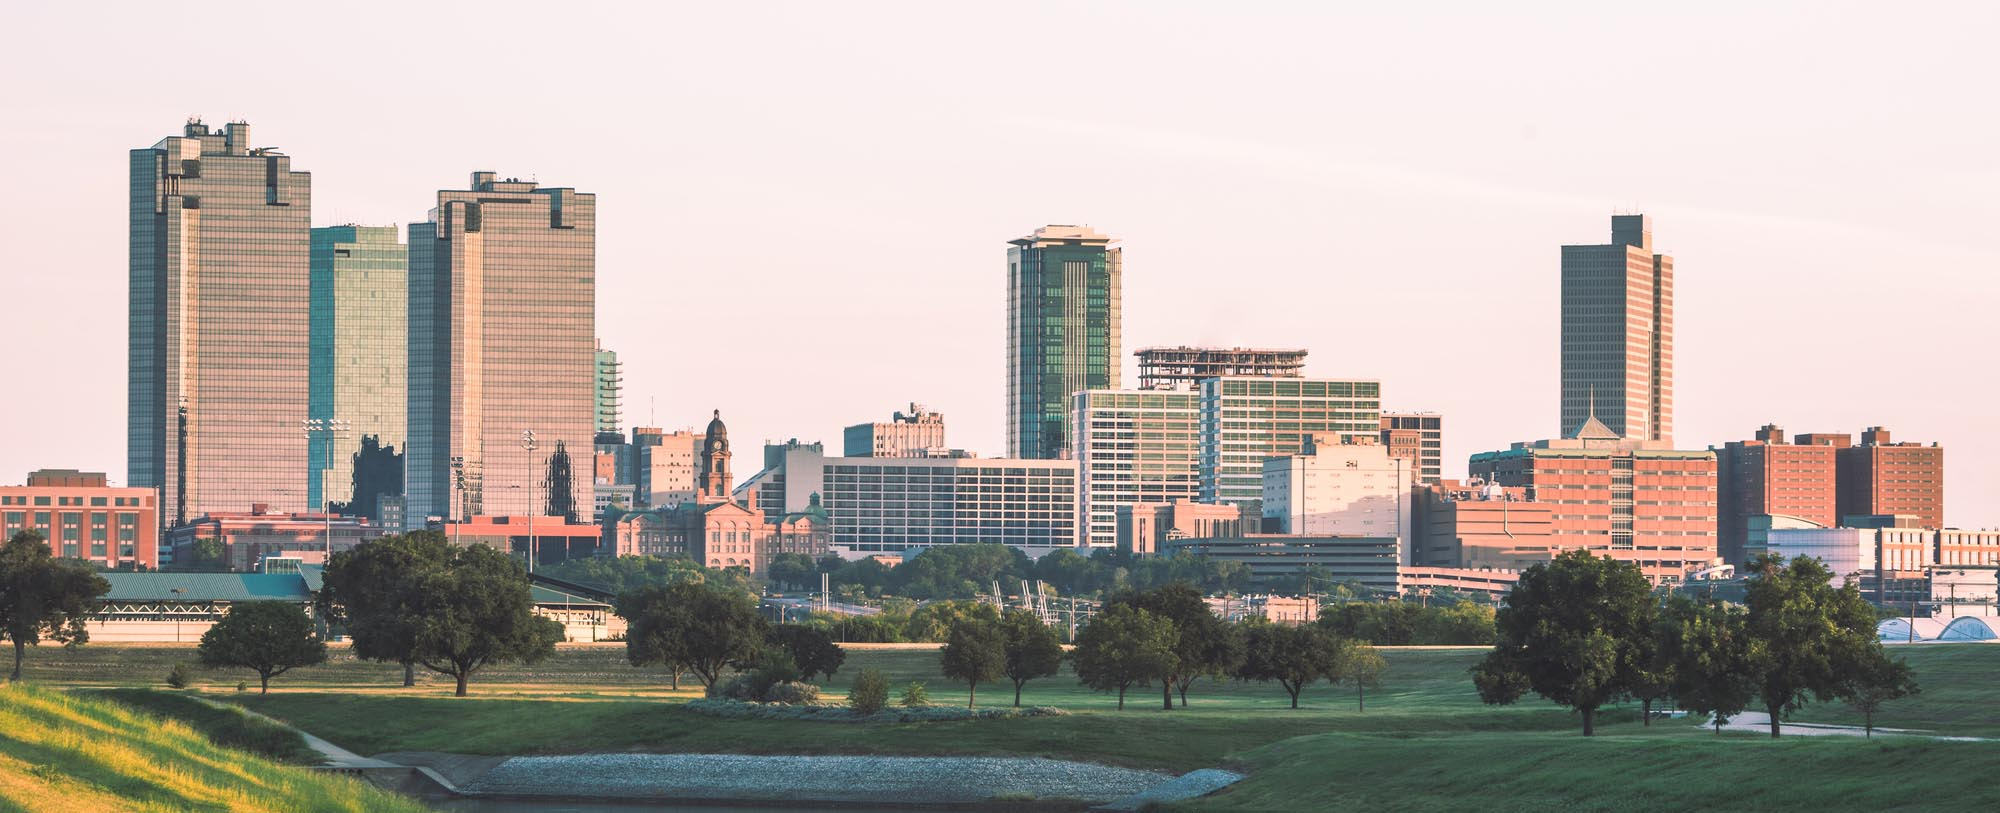 A view of downtown Fort Worth